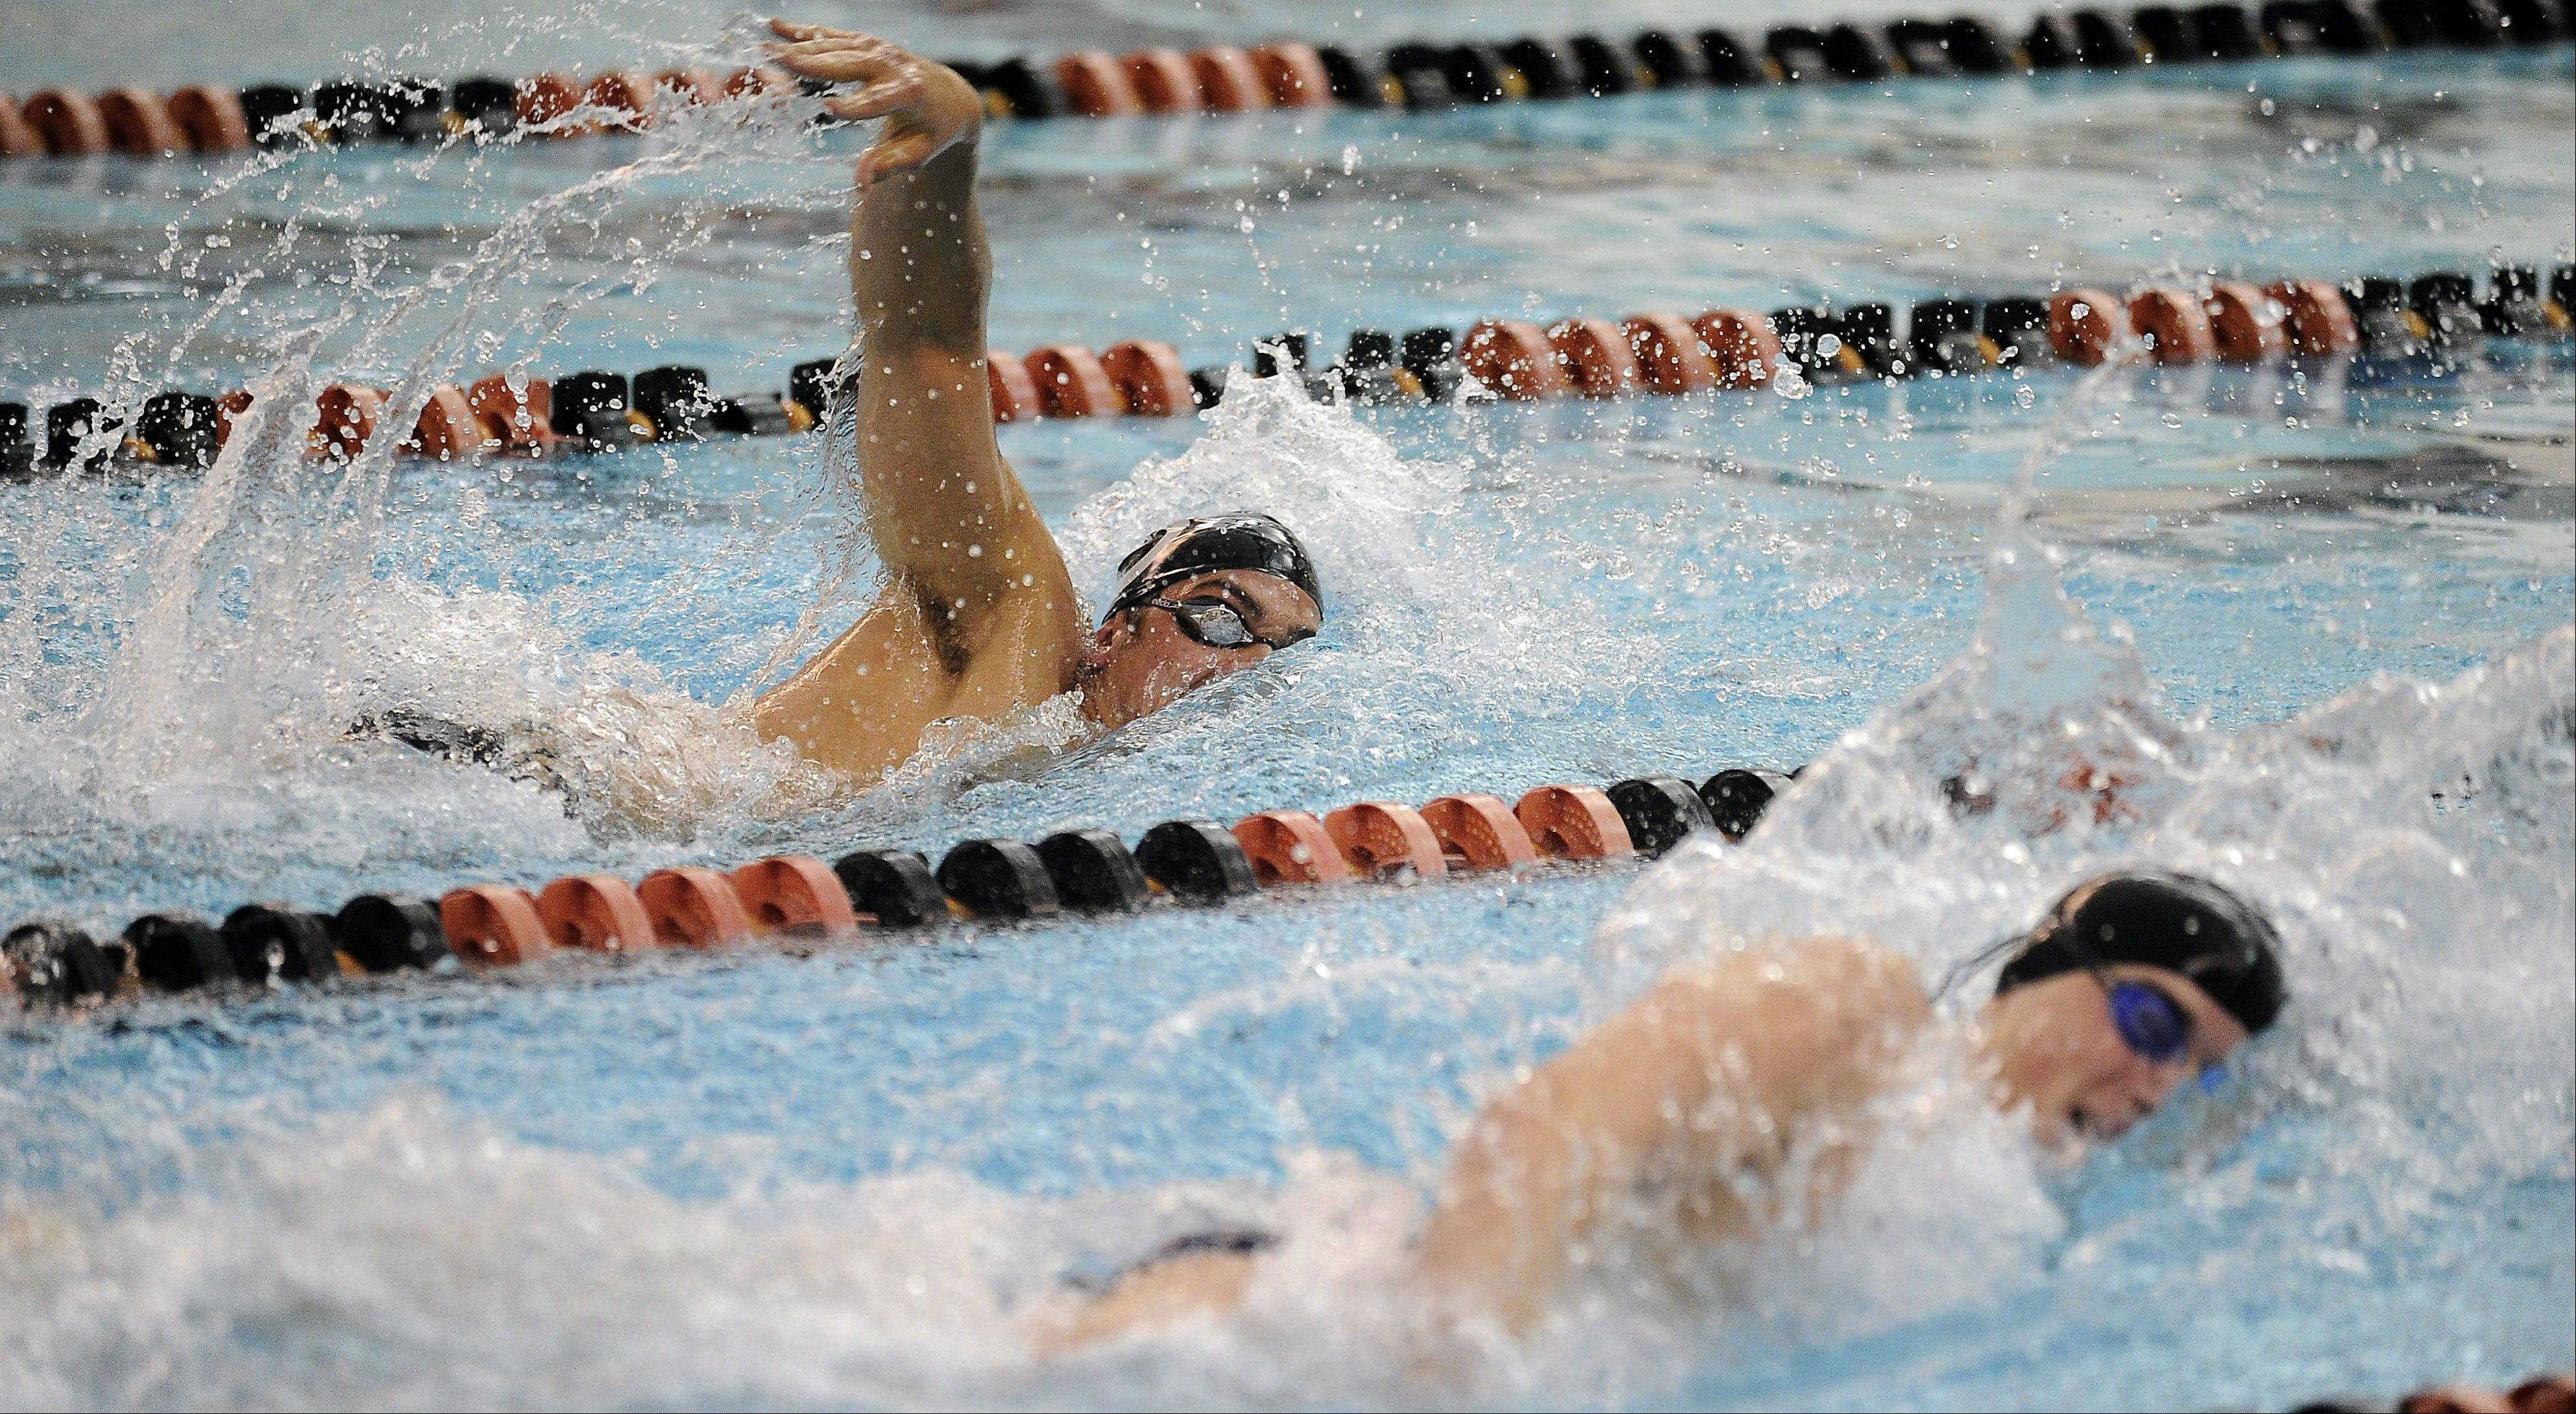 Barrington's Jack Strauss, top, and Conant's Jonathon Burke go neck and neck in the 200 freestyle, with Burke pulling out a close win at Barrington on Friday.